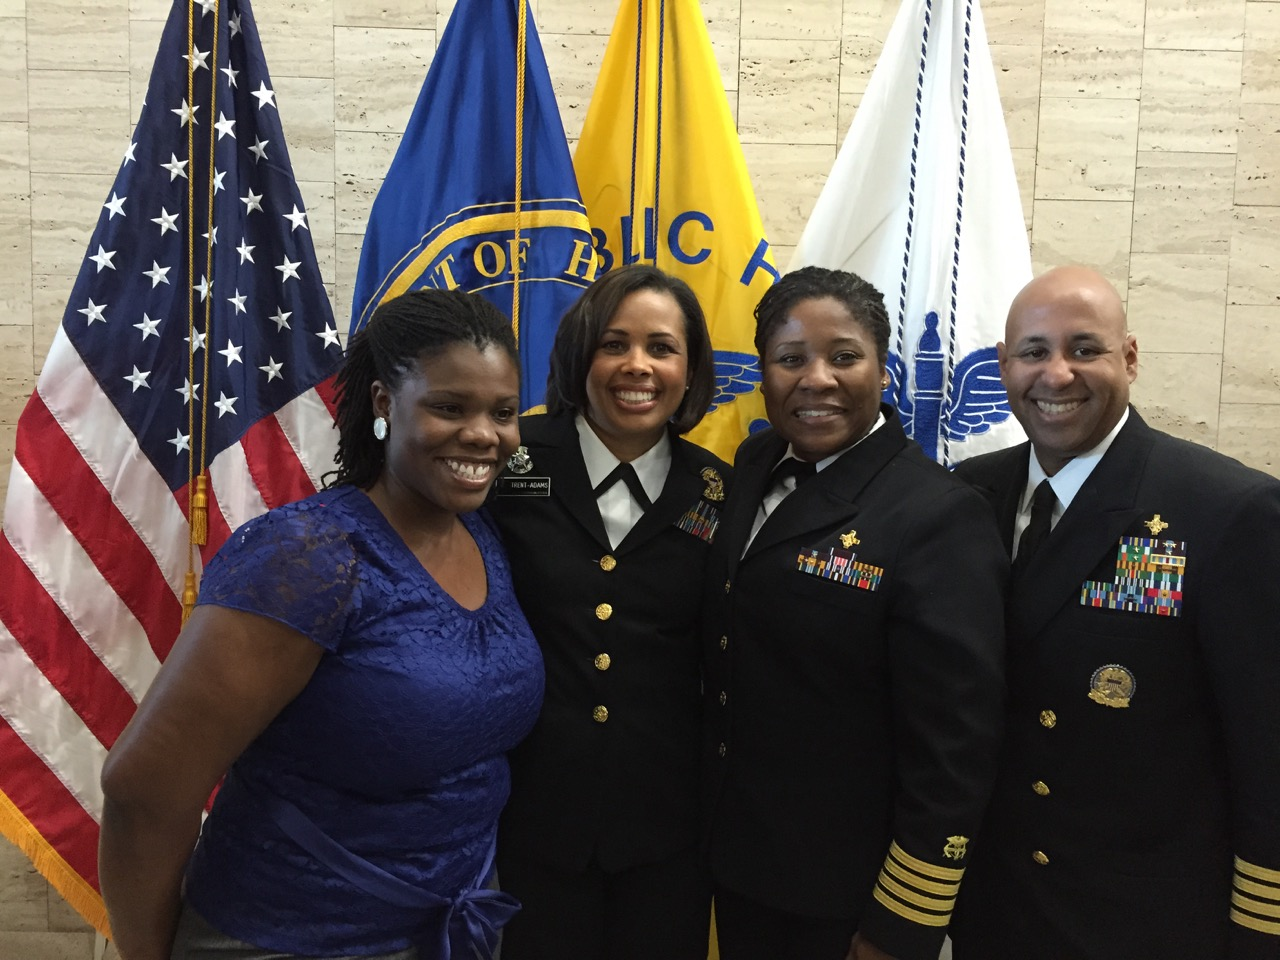 Celebrating Nurses Week 2017 with our new Acting Surgeon General